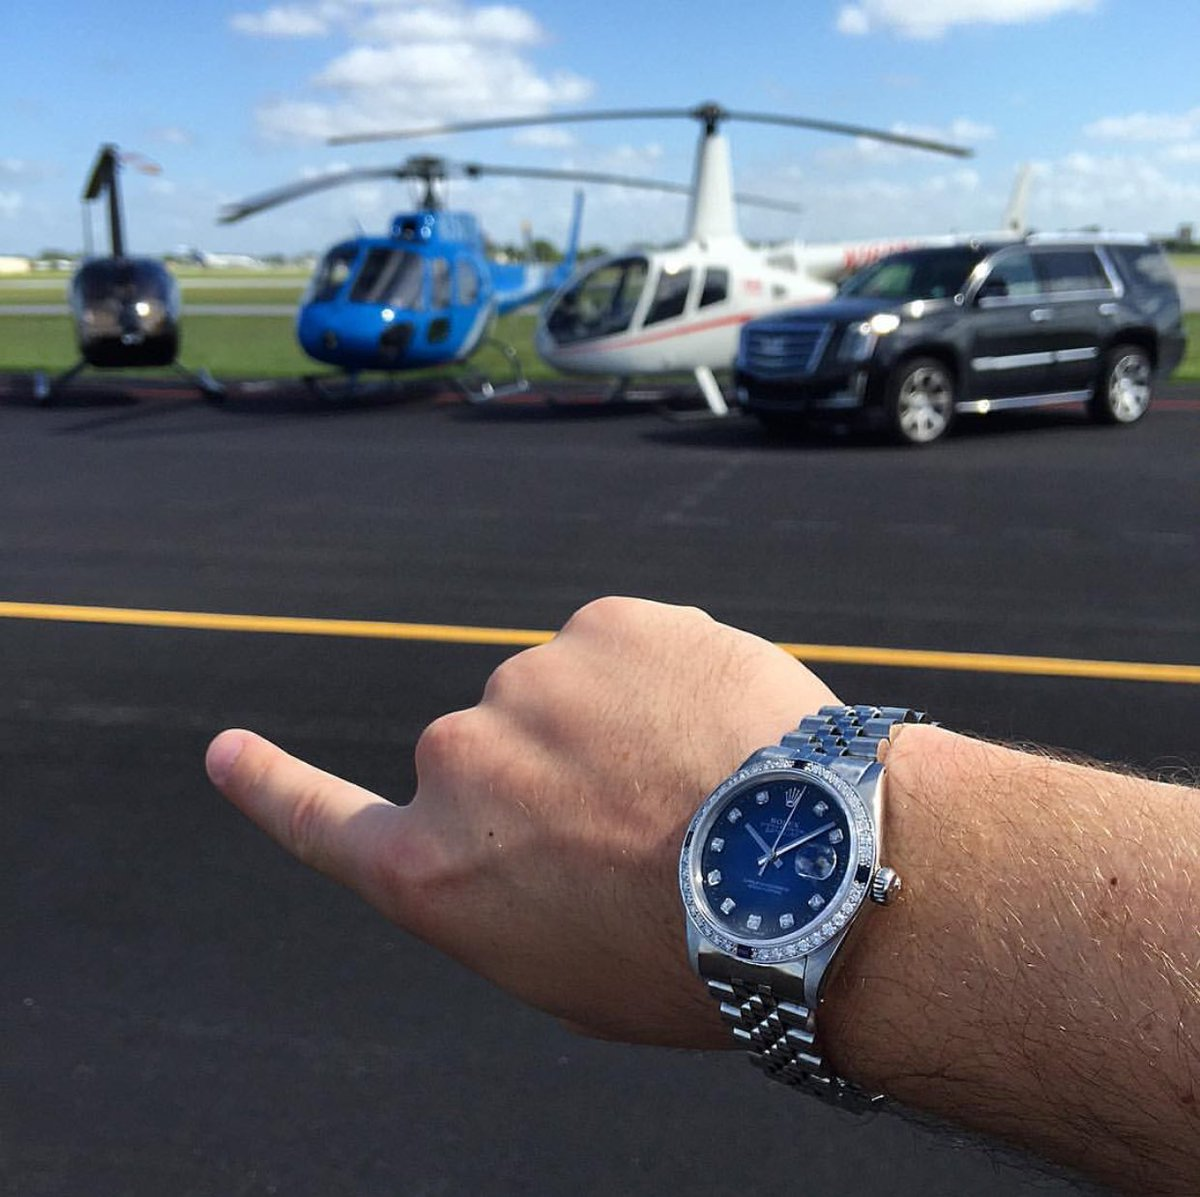 Time to fly! The only question is which one?  #helicopter #helicopters #helicoptero #escalade #rolex #miami #southbeach #diamonds # # <br>http://pic.twitter.com/O8rhIXqIDD